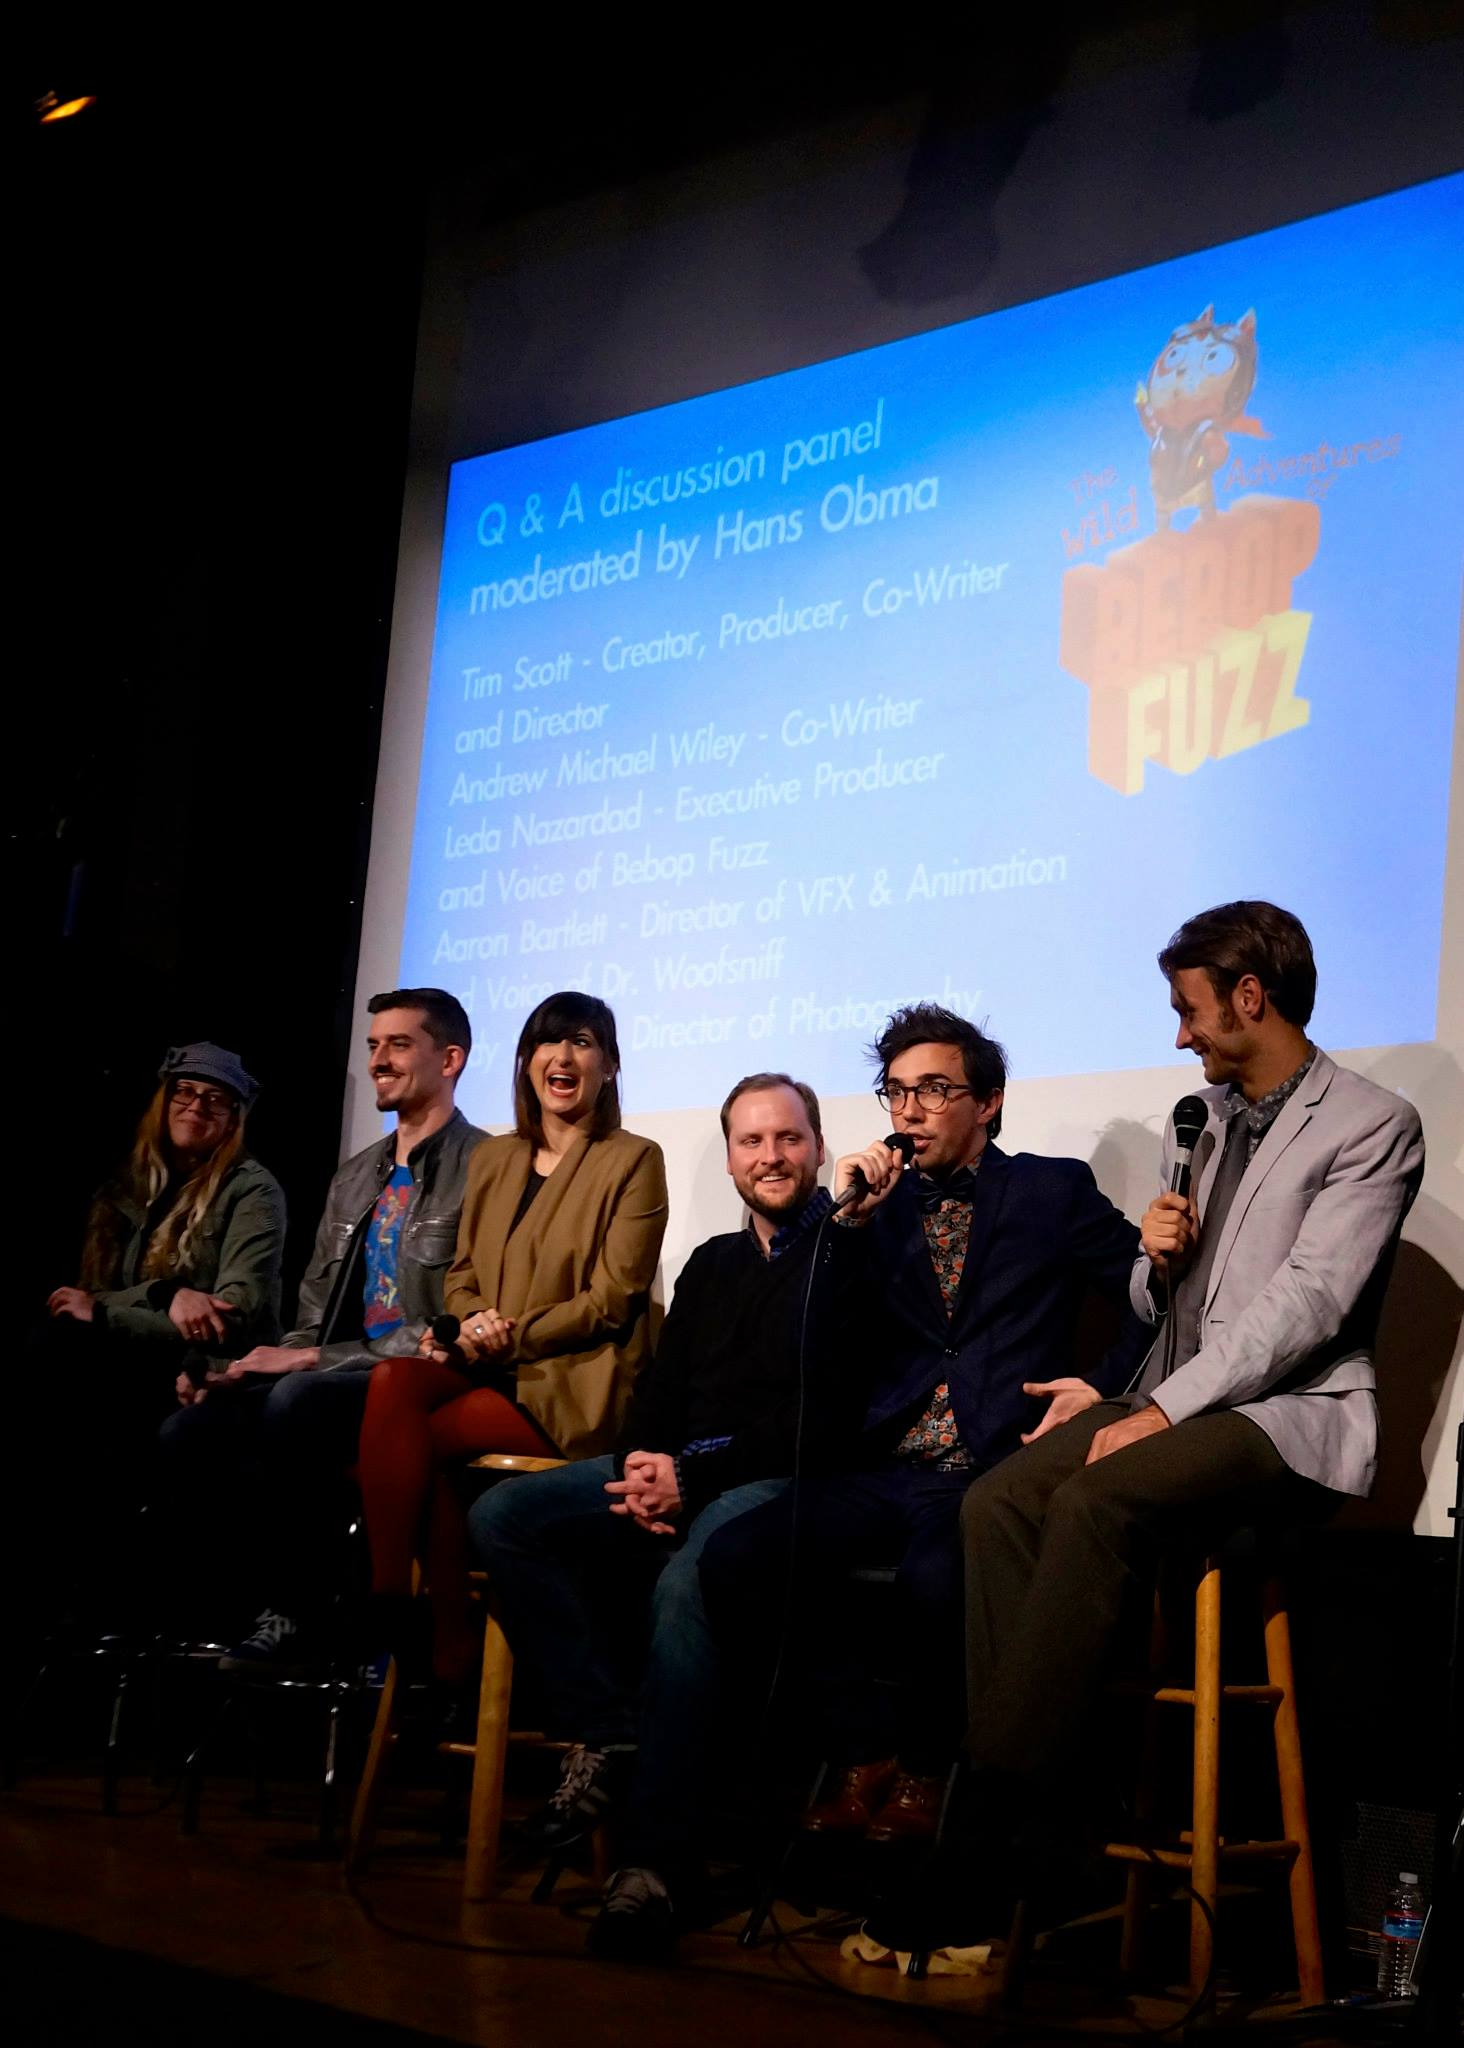 The team behind  The Wild Adventure of Bebop Fuzz  at the L.A. premiere at  Art Share L.A. , Winter 2014. Photo by  Michelle Young .